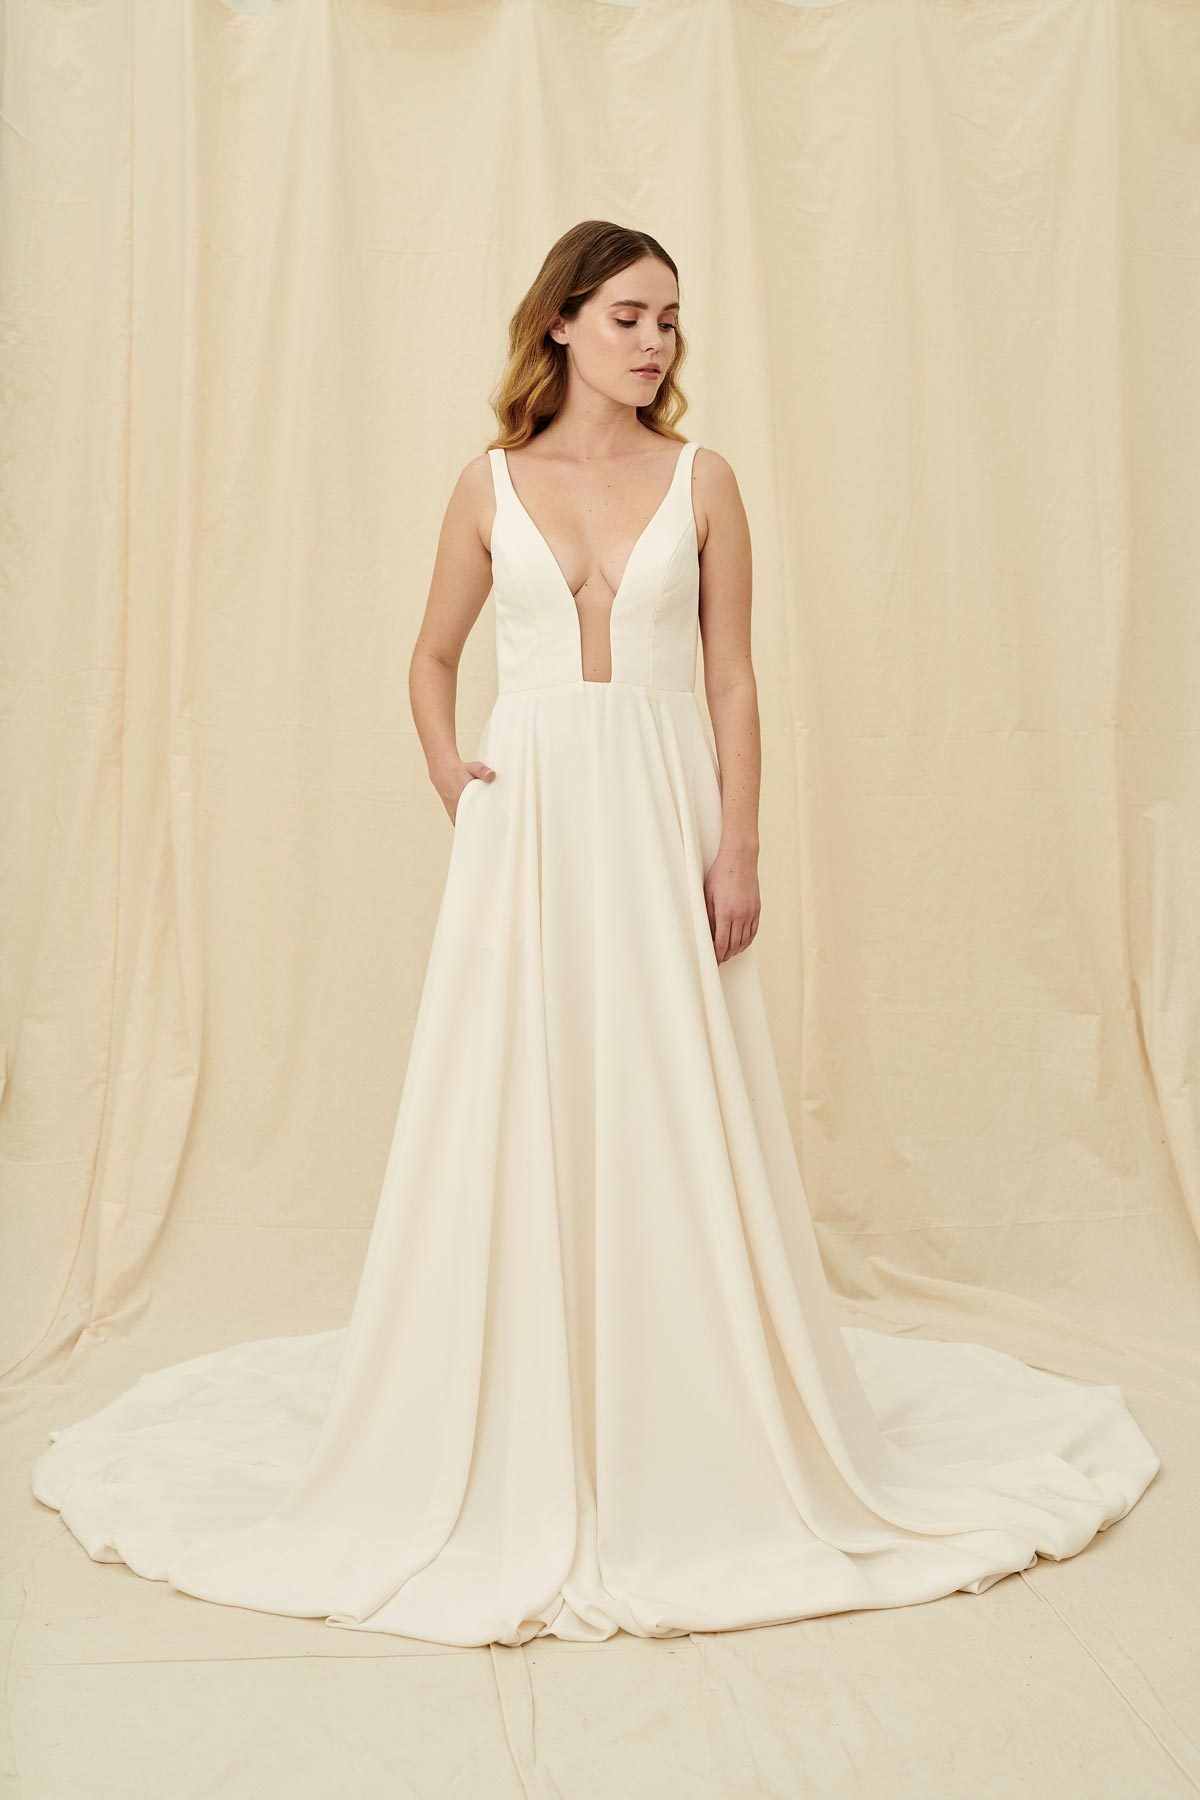 Aesling Selcouth Plunging Neckline Full Skirt Wedding Dress In Full Crepe Made In Vancouver Minimal Wedding Dress Wedding Dress Shopping Crepe Wedding Dress [ 1800 x 1200 Pixel ]